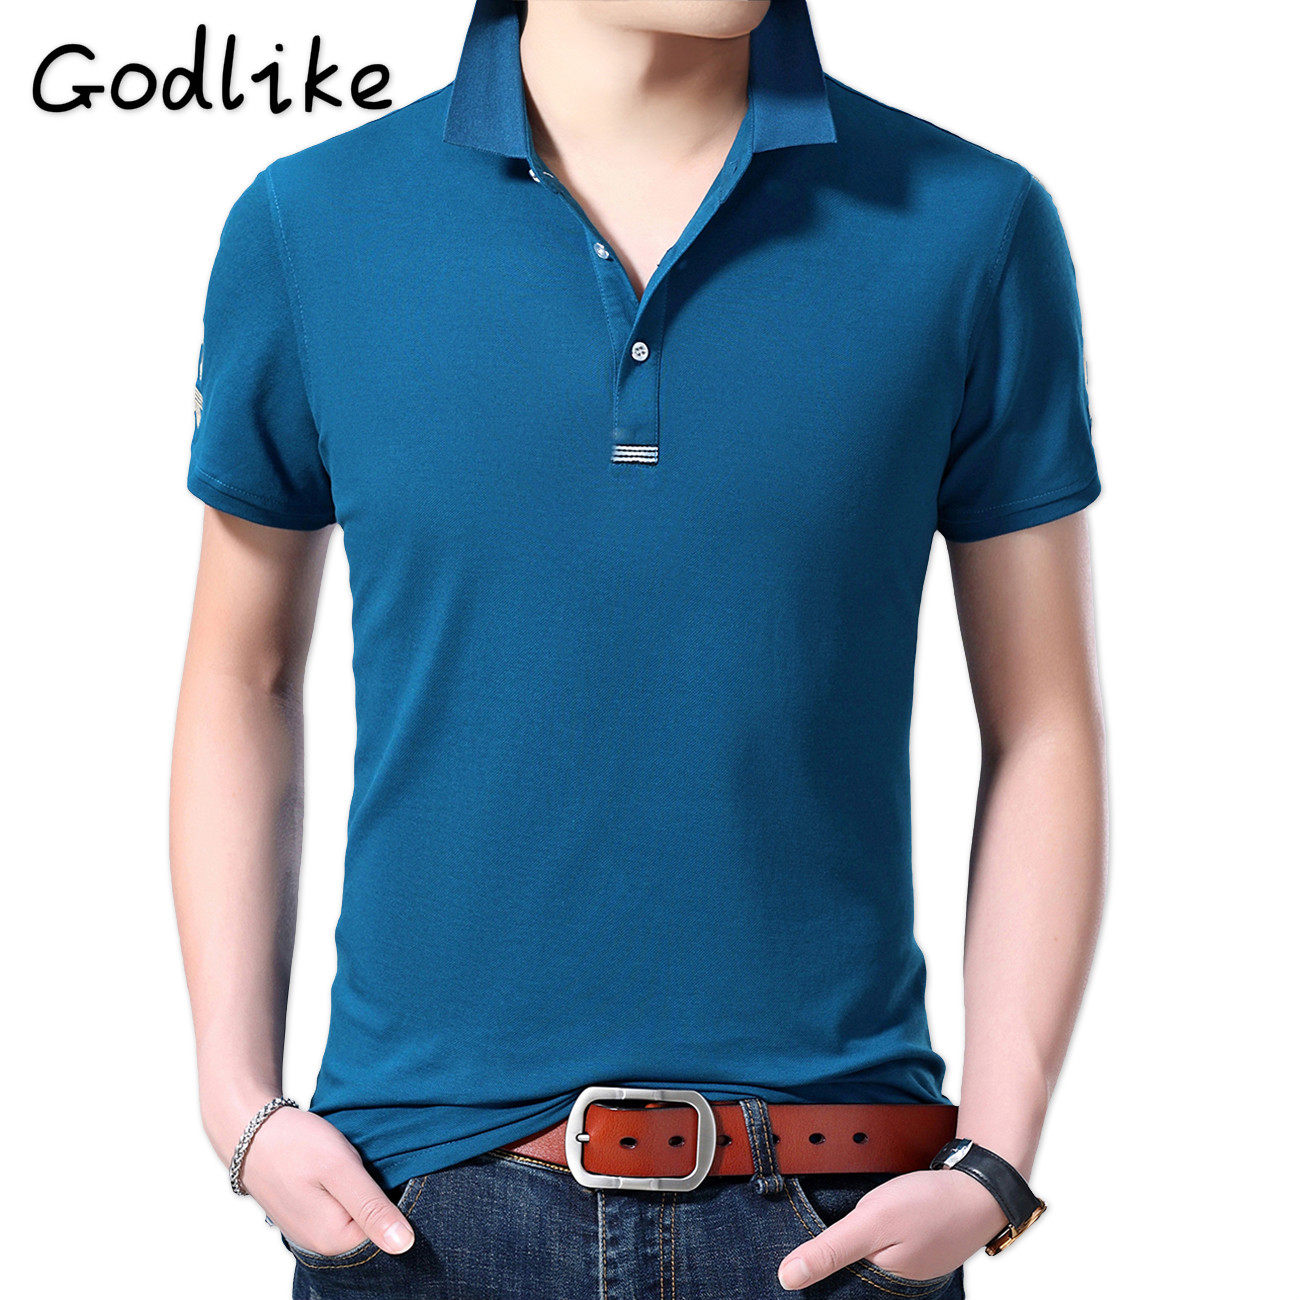 GODLIKE 2019 Men's fashion leisure cultivate one's morality short sleeve   POLO   unlined upper garment solid color   POLO   shirt